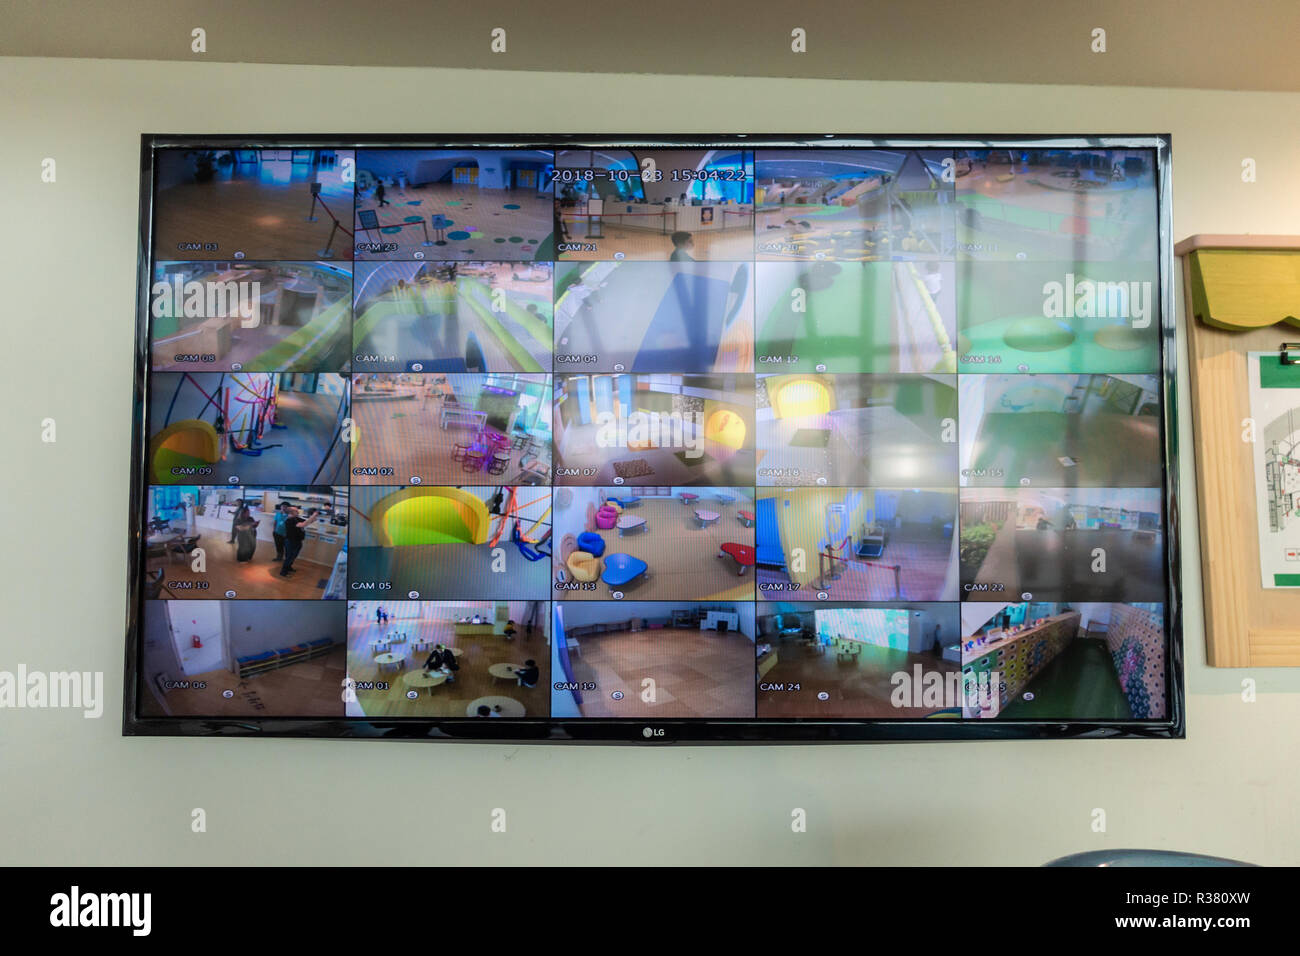 A CCTV system at a children's play center on Seoul allows parents to monitor their children whilst remaining seated. - Stock Image